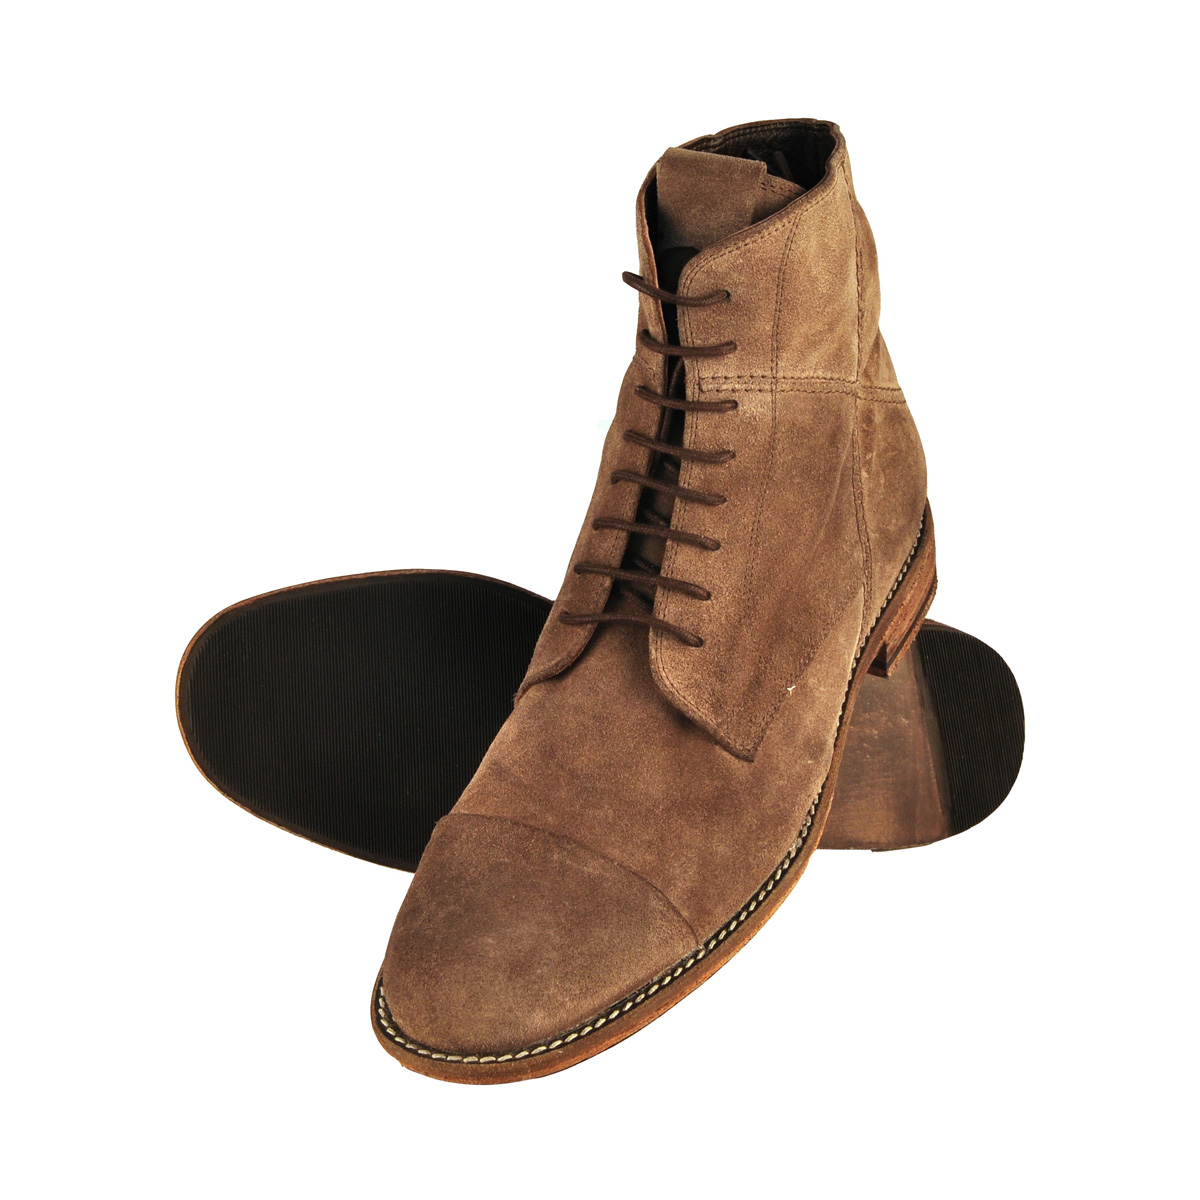 Buy Mens Boots - Boot Yc